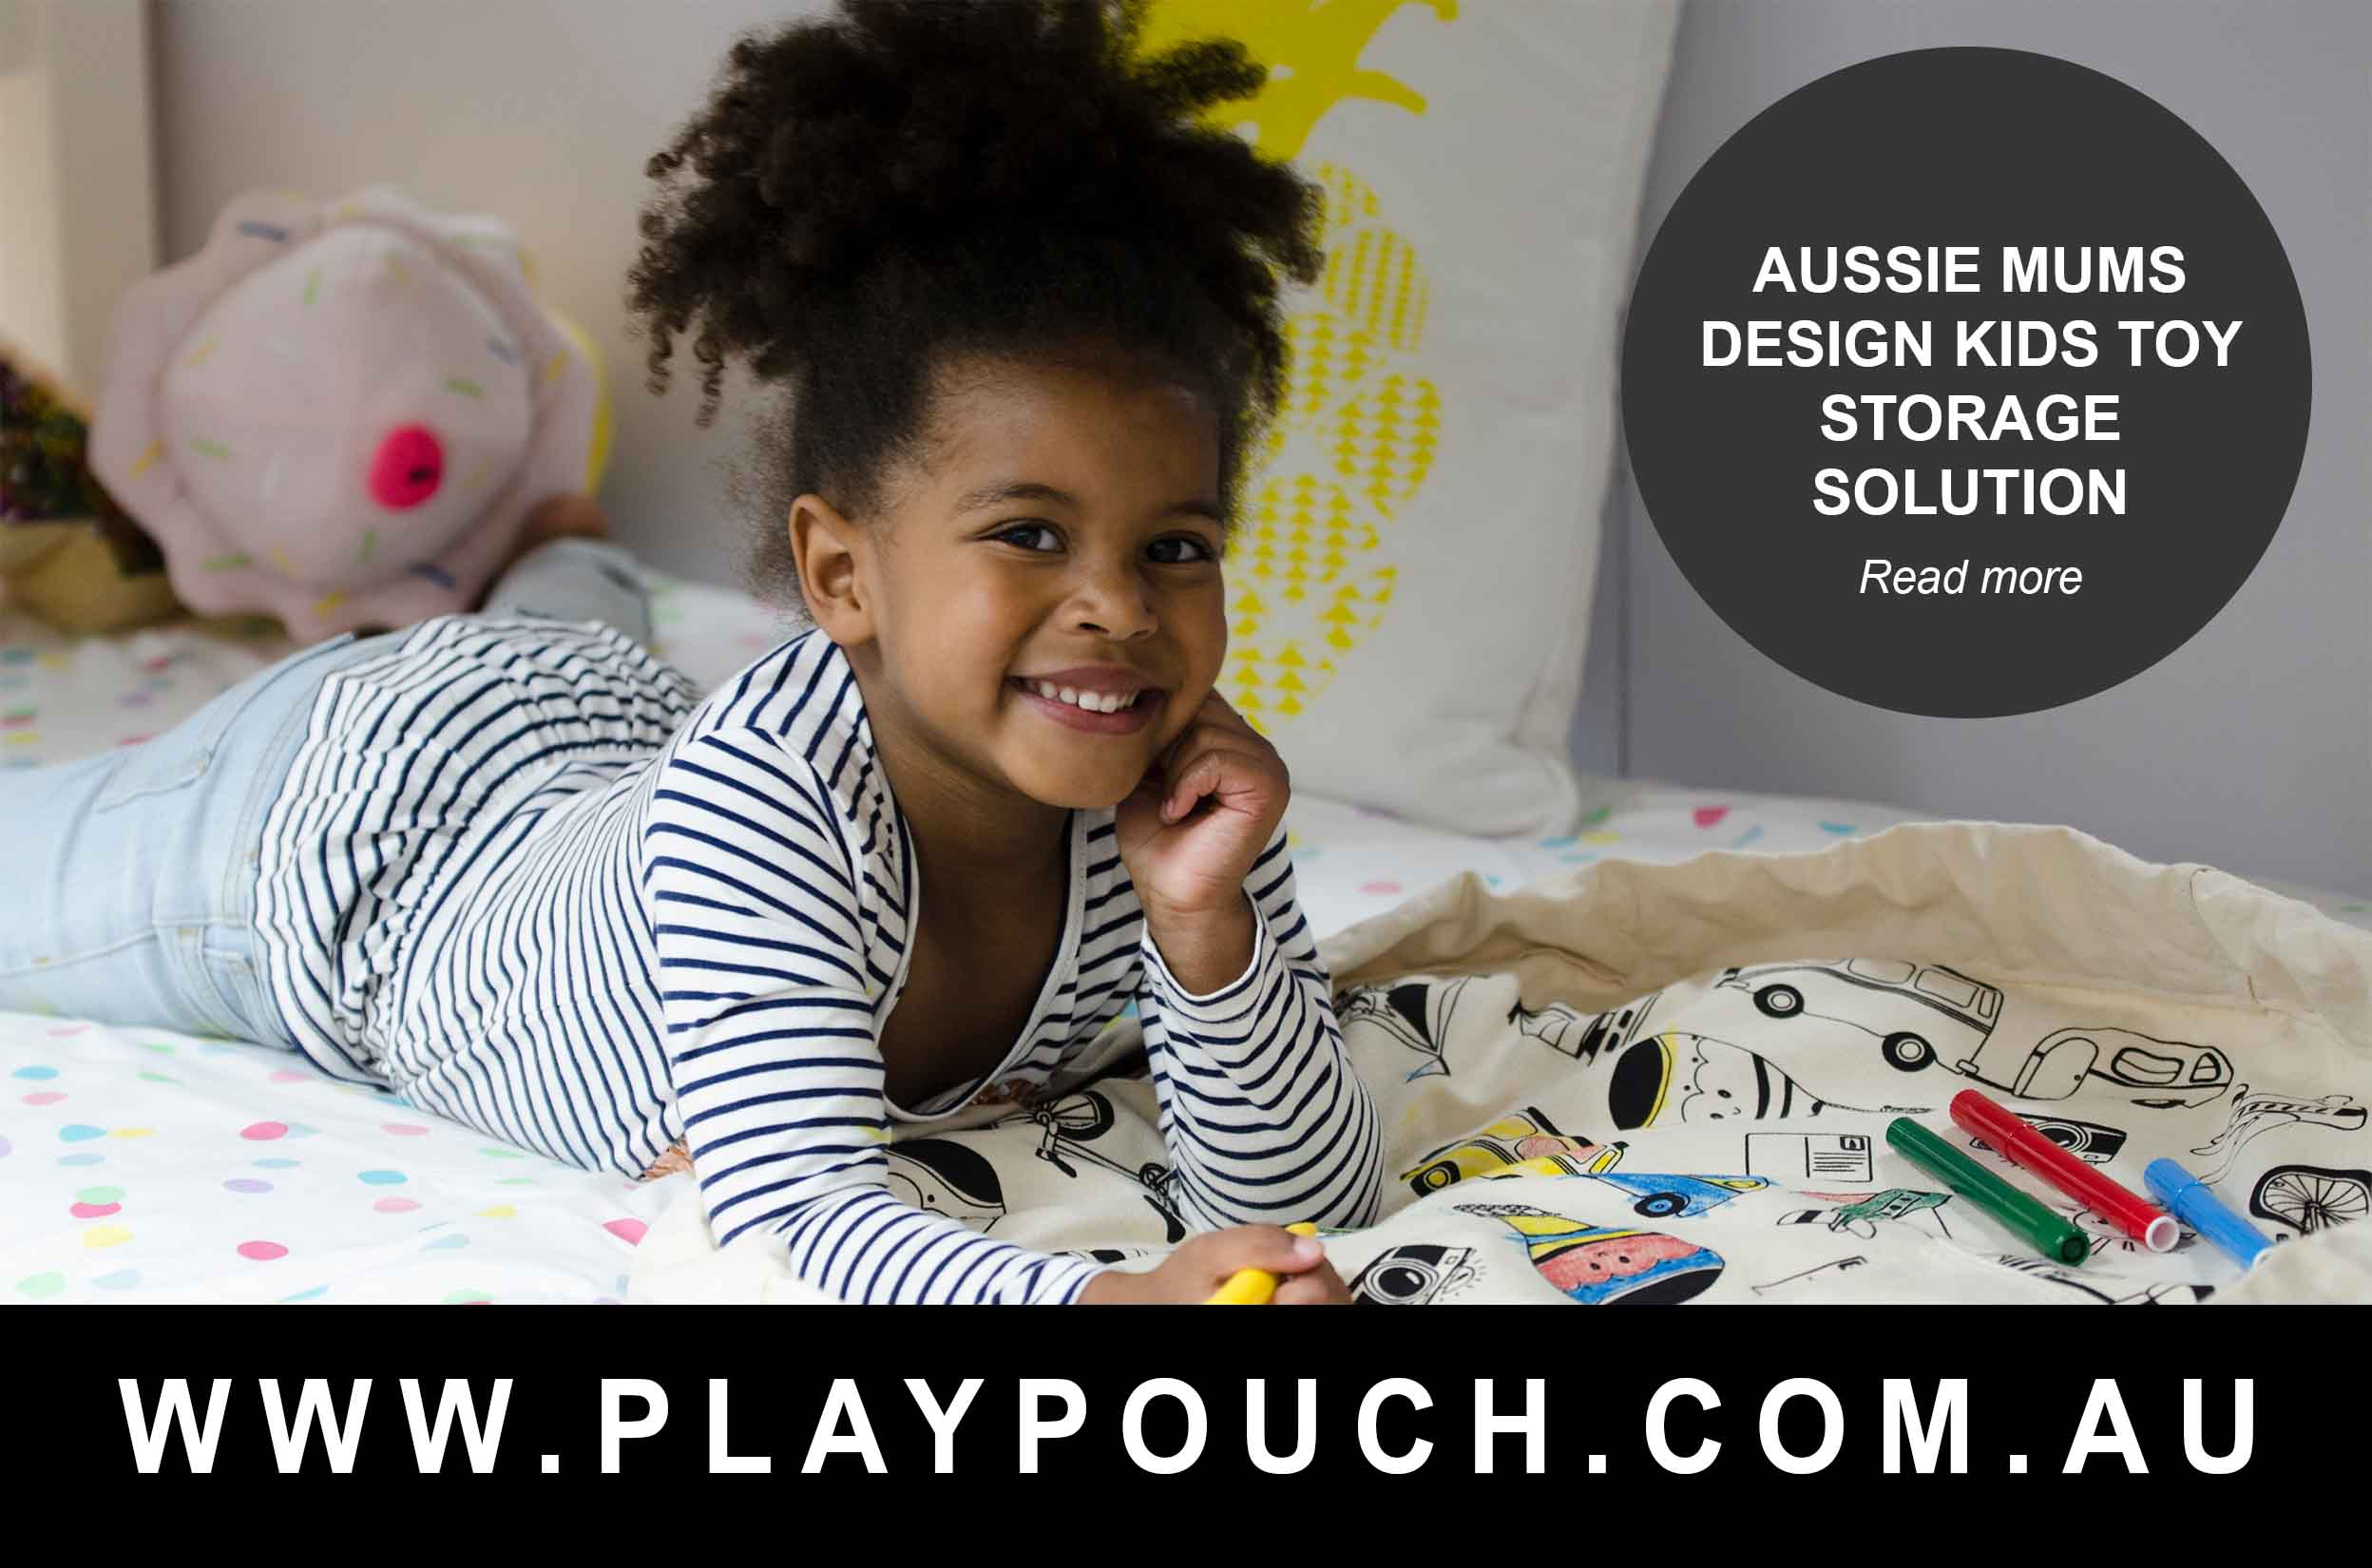 PLAY-POUCH - PLAY-POUCH